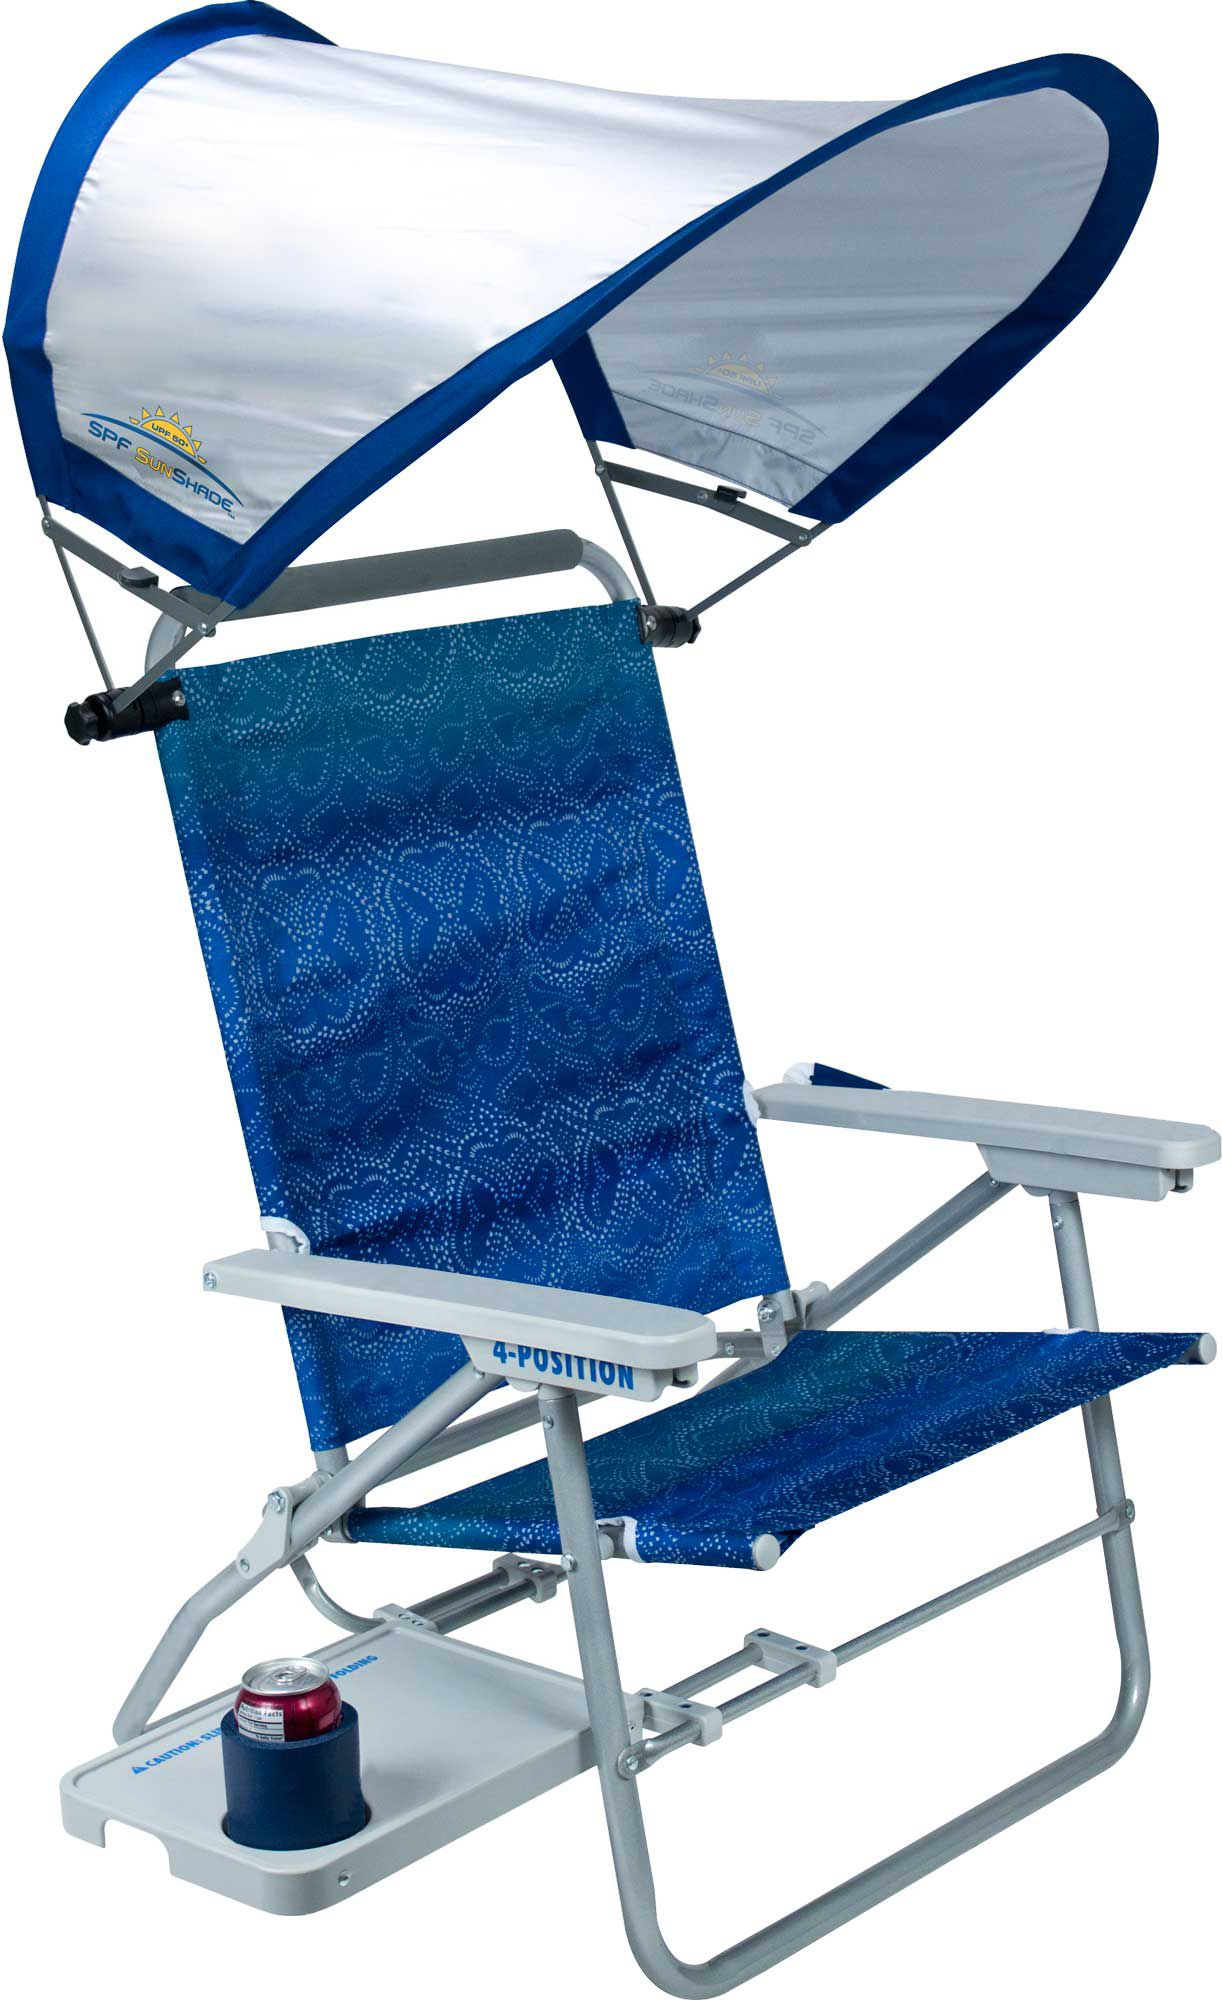 newquay low chair shop beach products camping